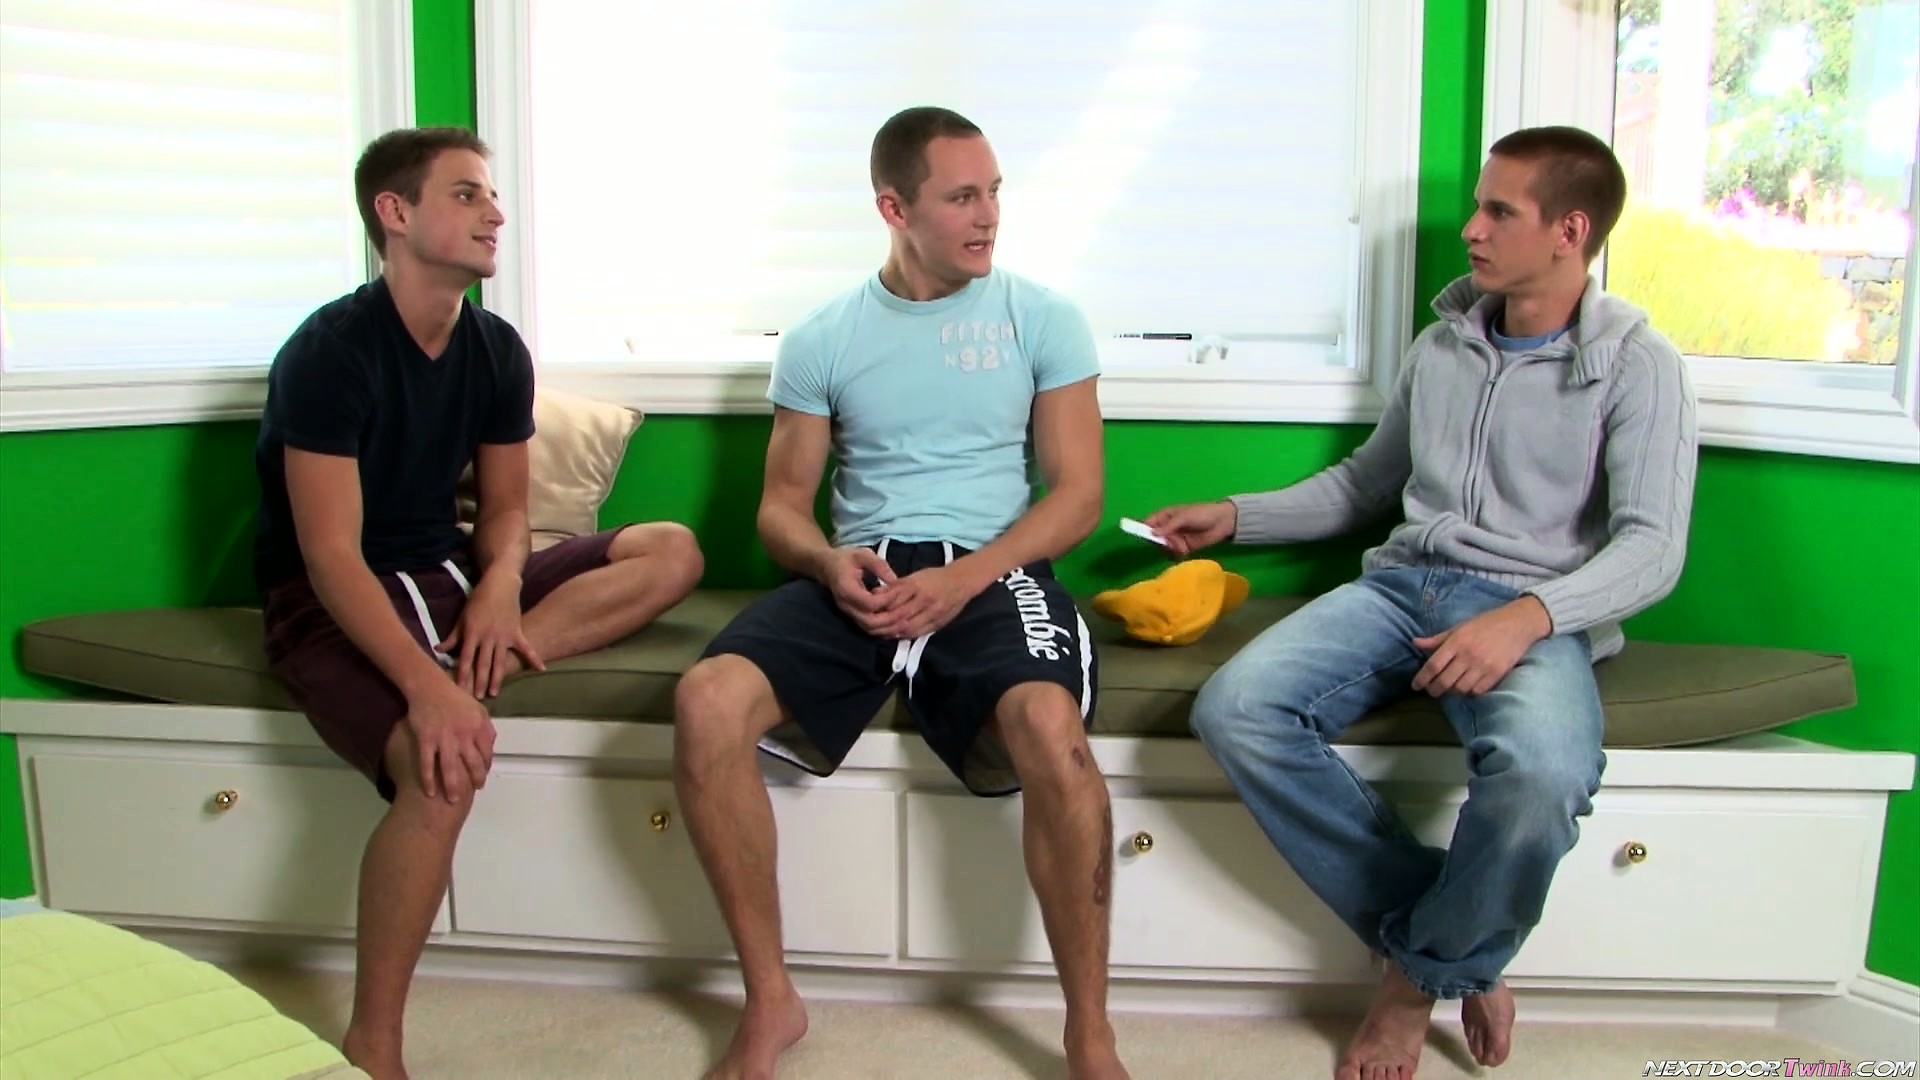 Porno Video of Three Gays Make A Dare And One Guy Shows Off His Ass For The Others